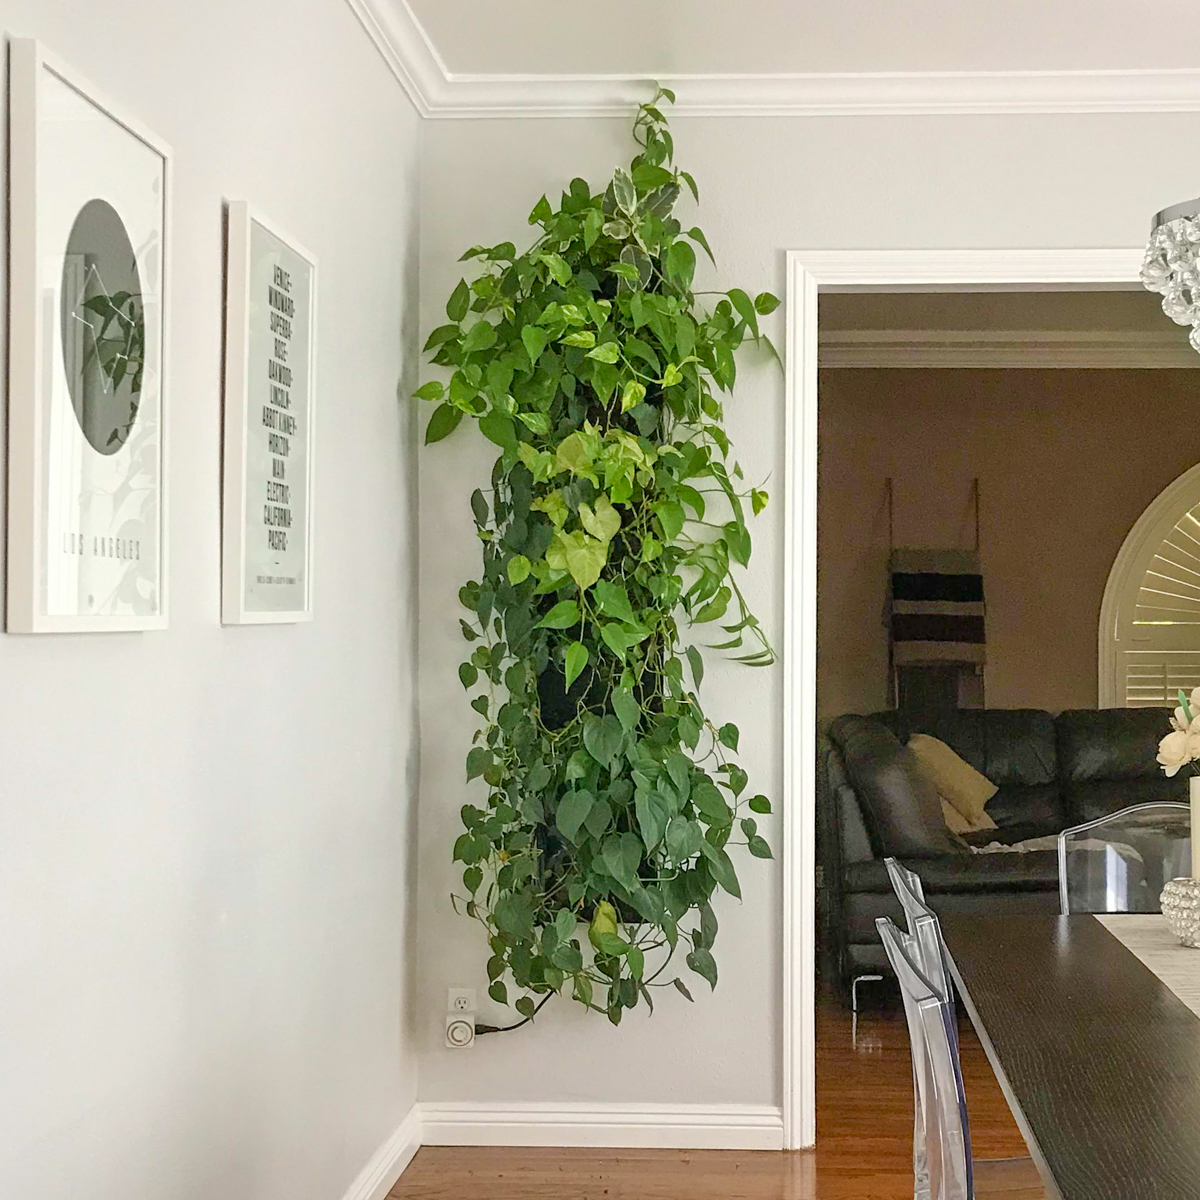 Florafelt Compact Vertical Garden Kit by Tucker Warner Design for a Culver City Los Angeles home.